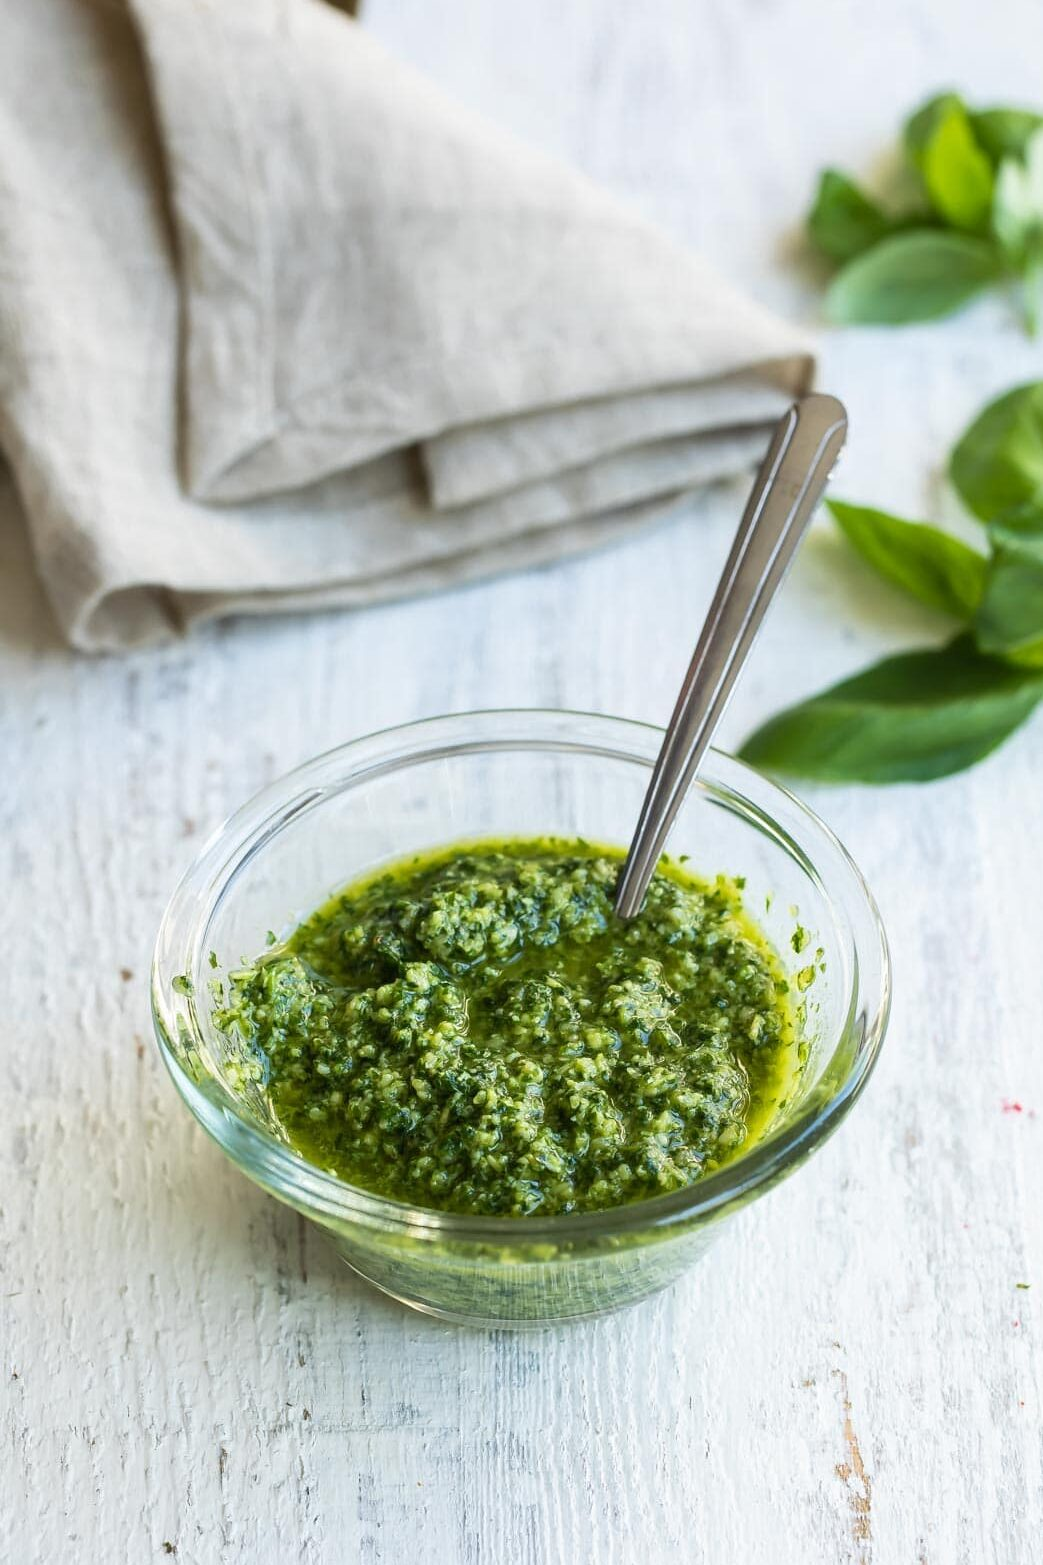 Basil pesto in a clear bowl with a spoon.